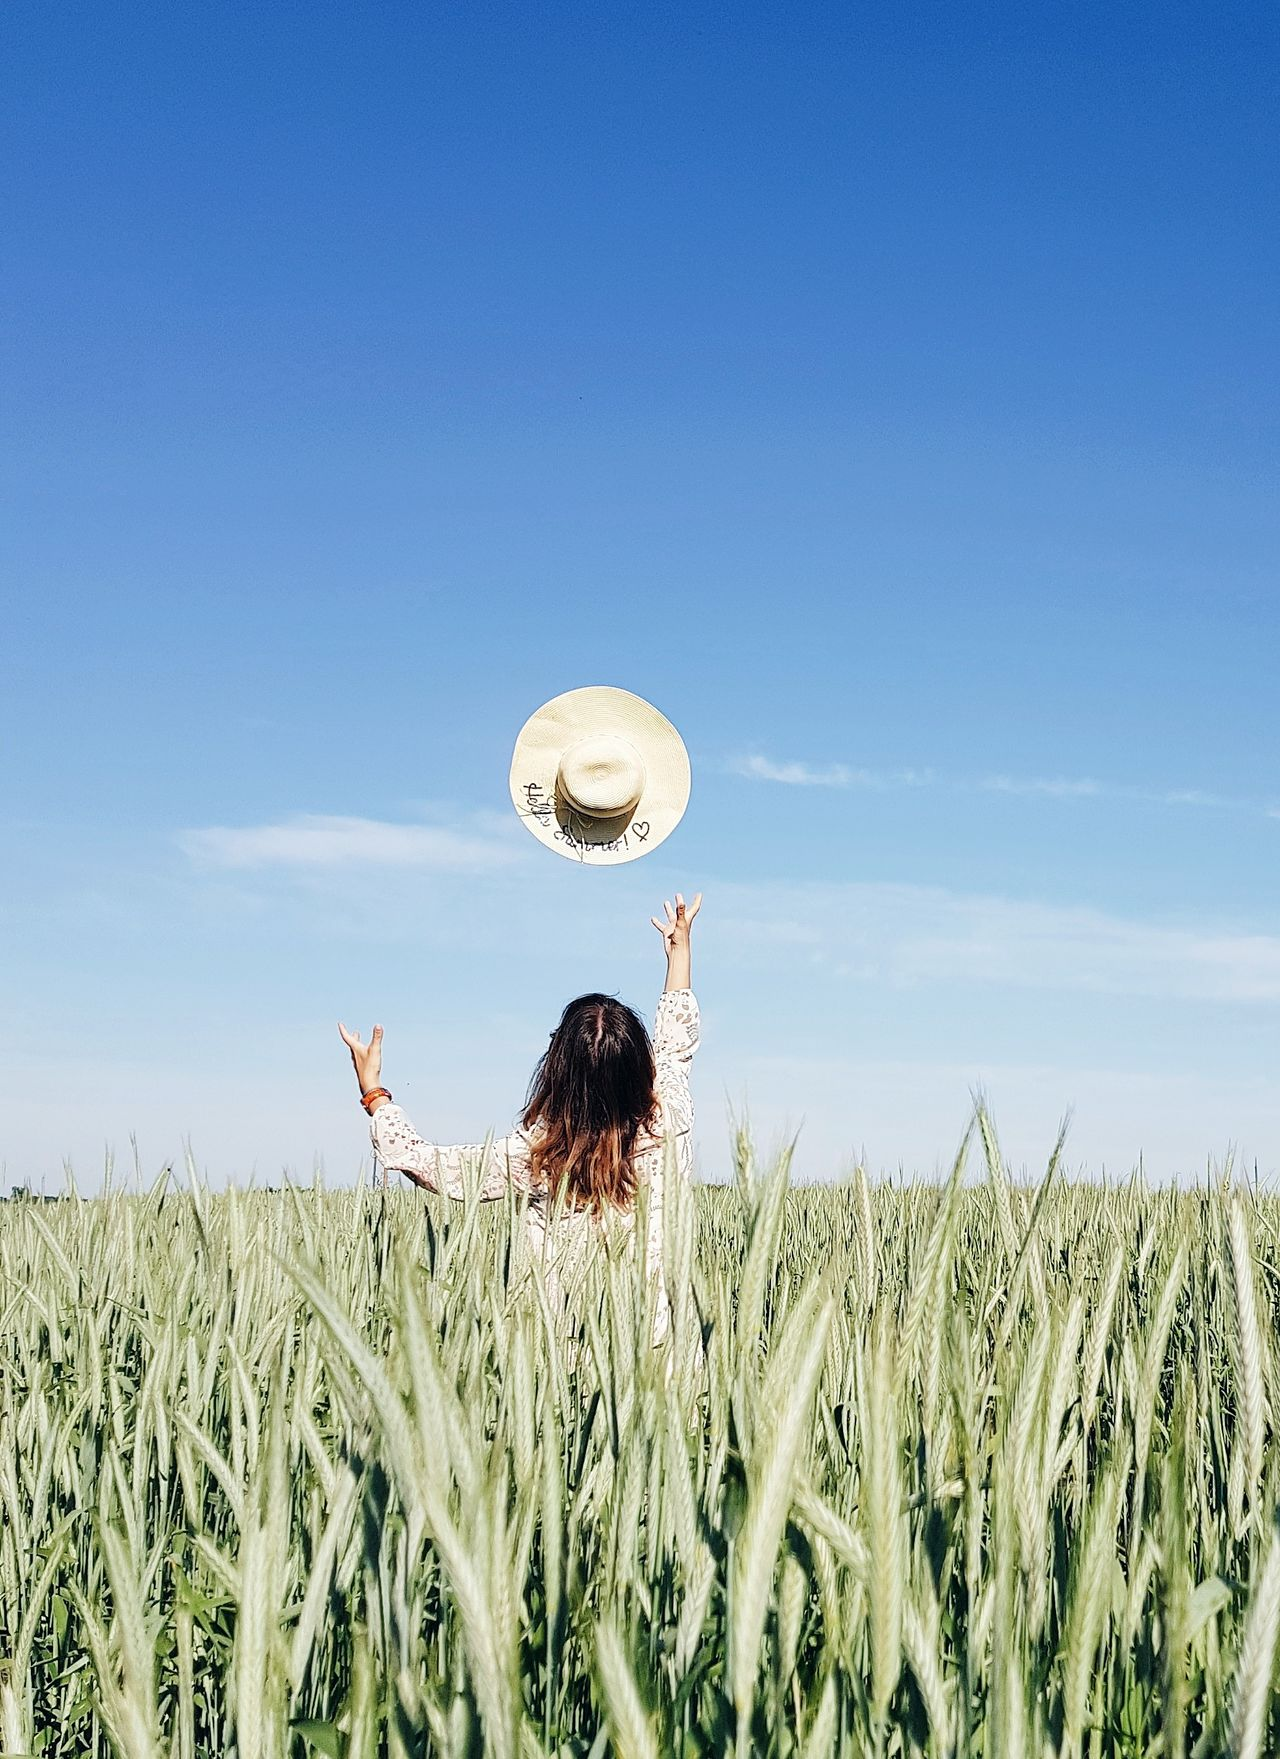 Live For The Story Crop  Agriculture Field Growth Cereal Plant Sky Rural Scene Abundance Plant Nature Adult Day People Blue Outdoors Standing Wheat Adults Only Human Body Part Clear Sky EyeEm Best Shots The Great Outdoors - 2017 EyeEm Awards Eye4photography  Only Women